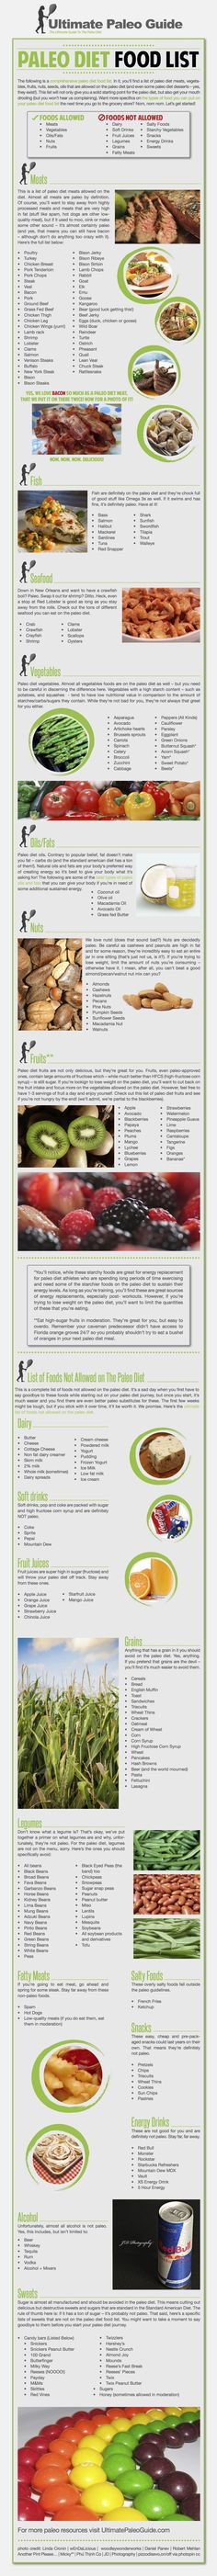 Paleo Diet Food List Infographic / Ultimate Paleo Guide